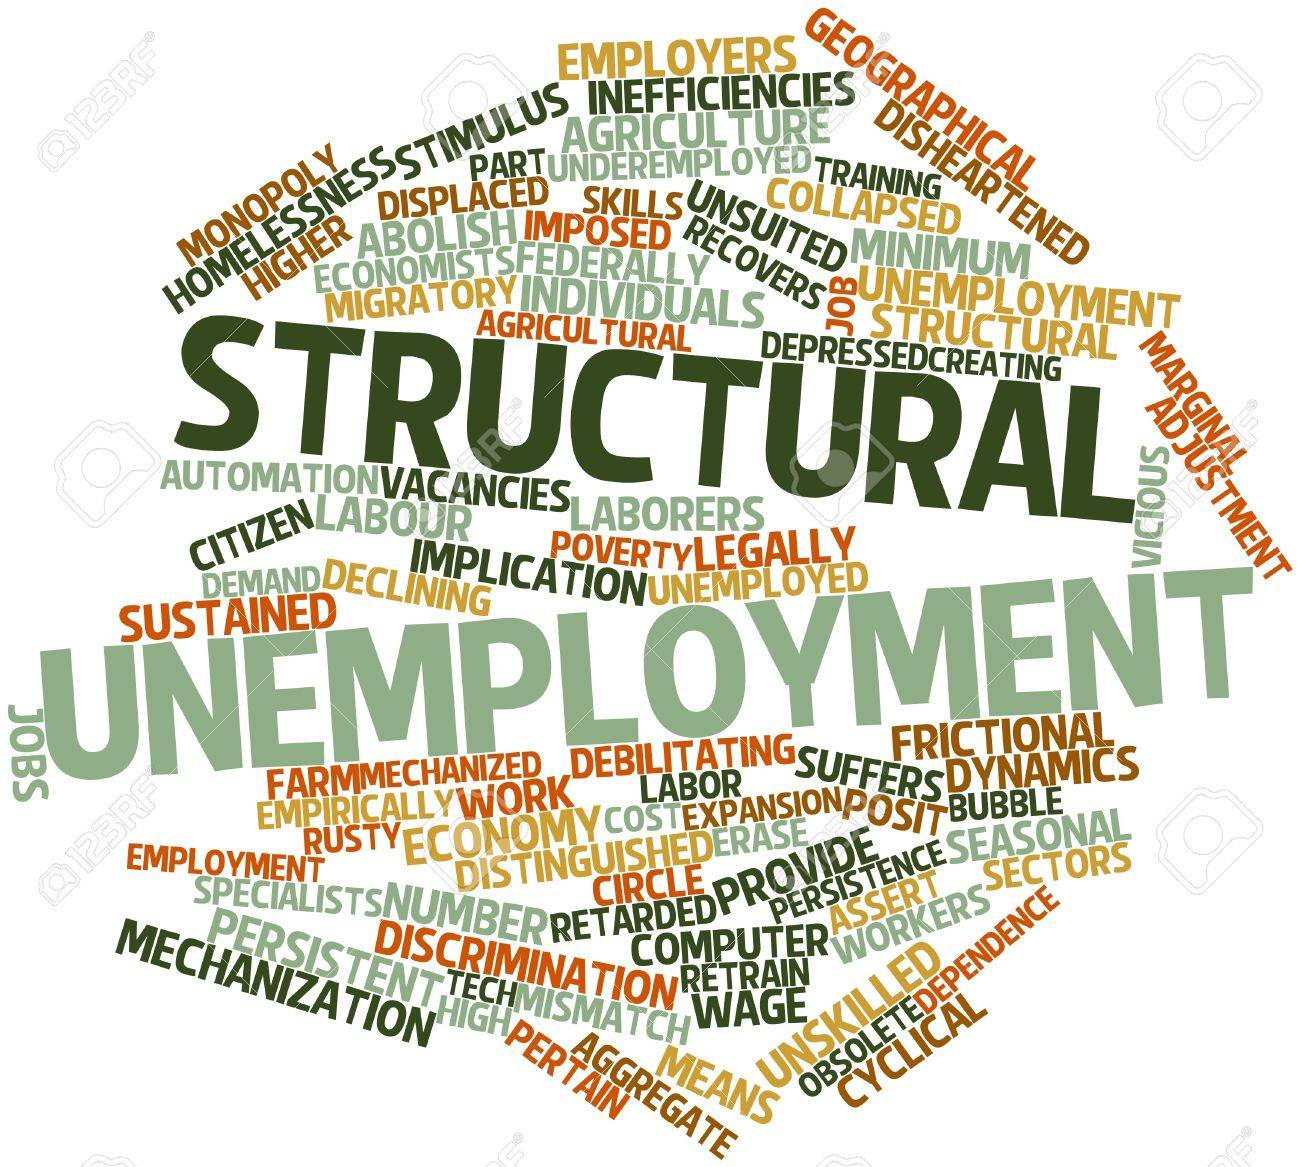 Structural Unemployment - A Measure of the Health of Economy